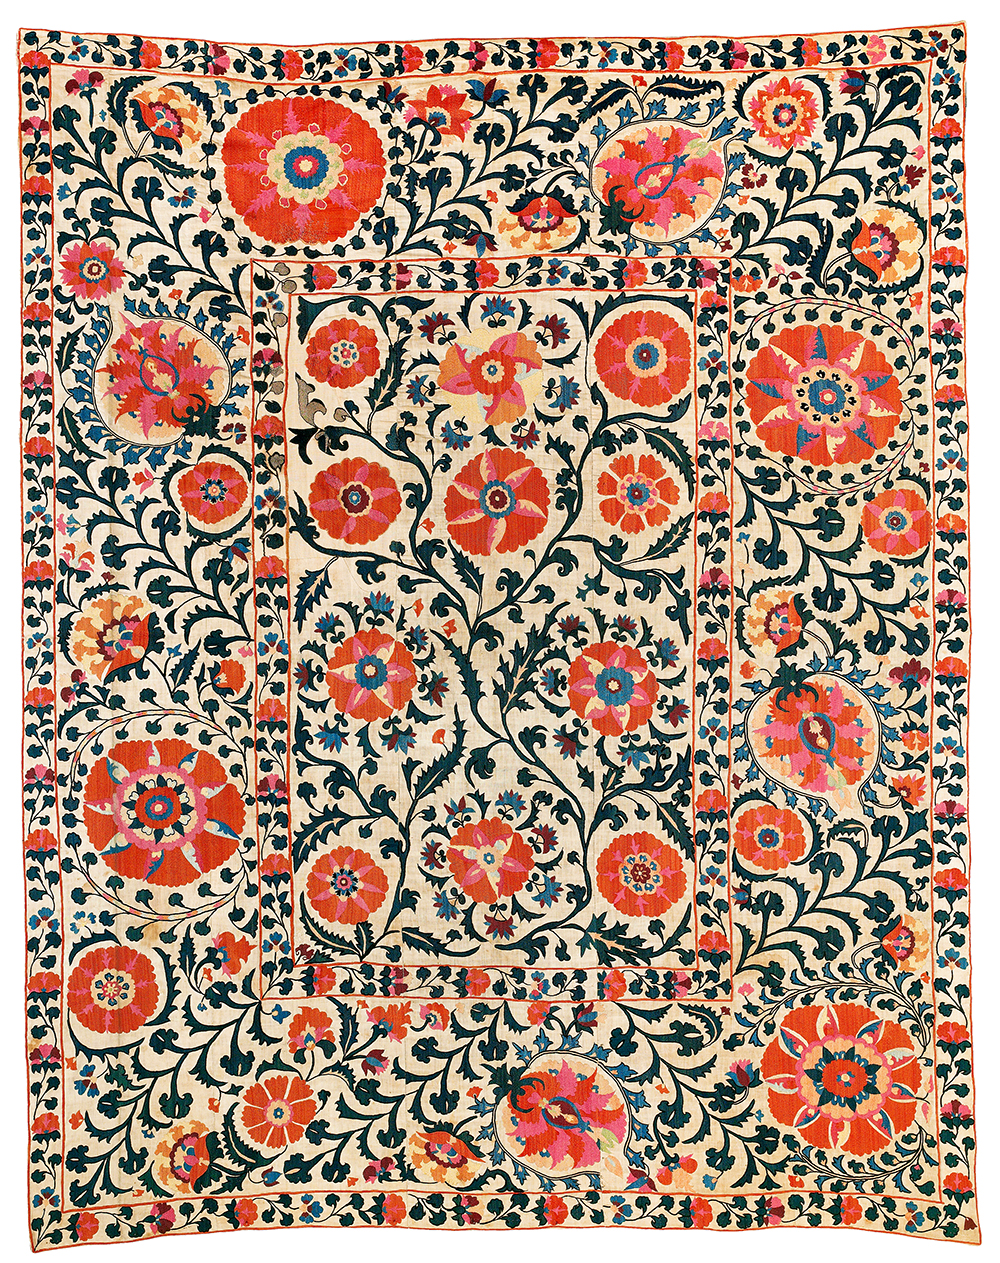 Lot 132, Suzani, Uzbekistan, 18th century, 186 x 232 cm, estimate €24,000